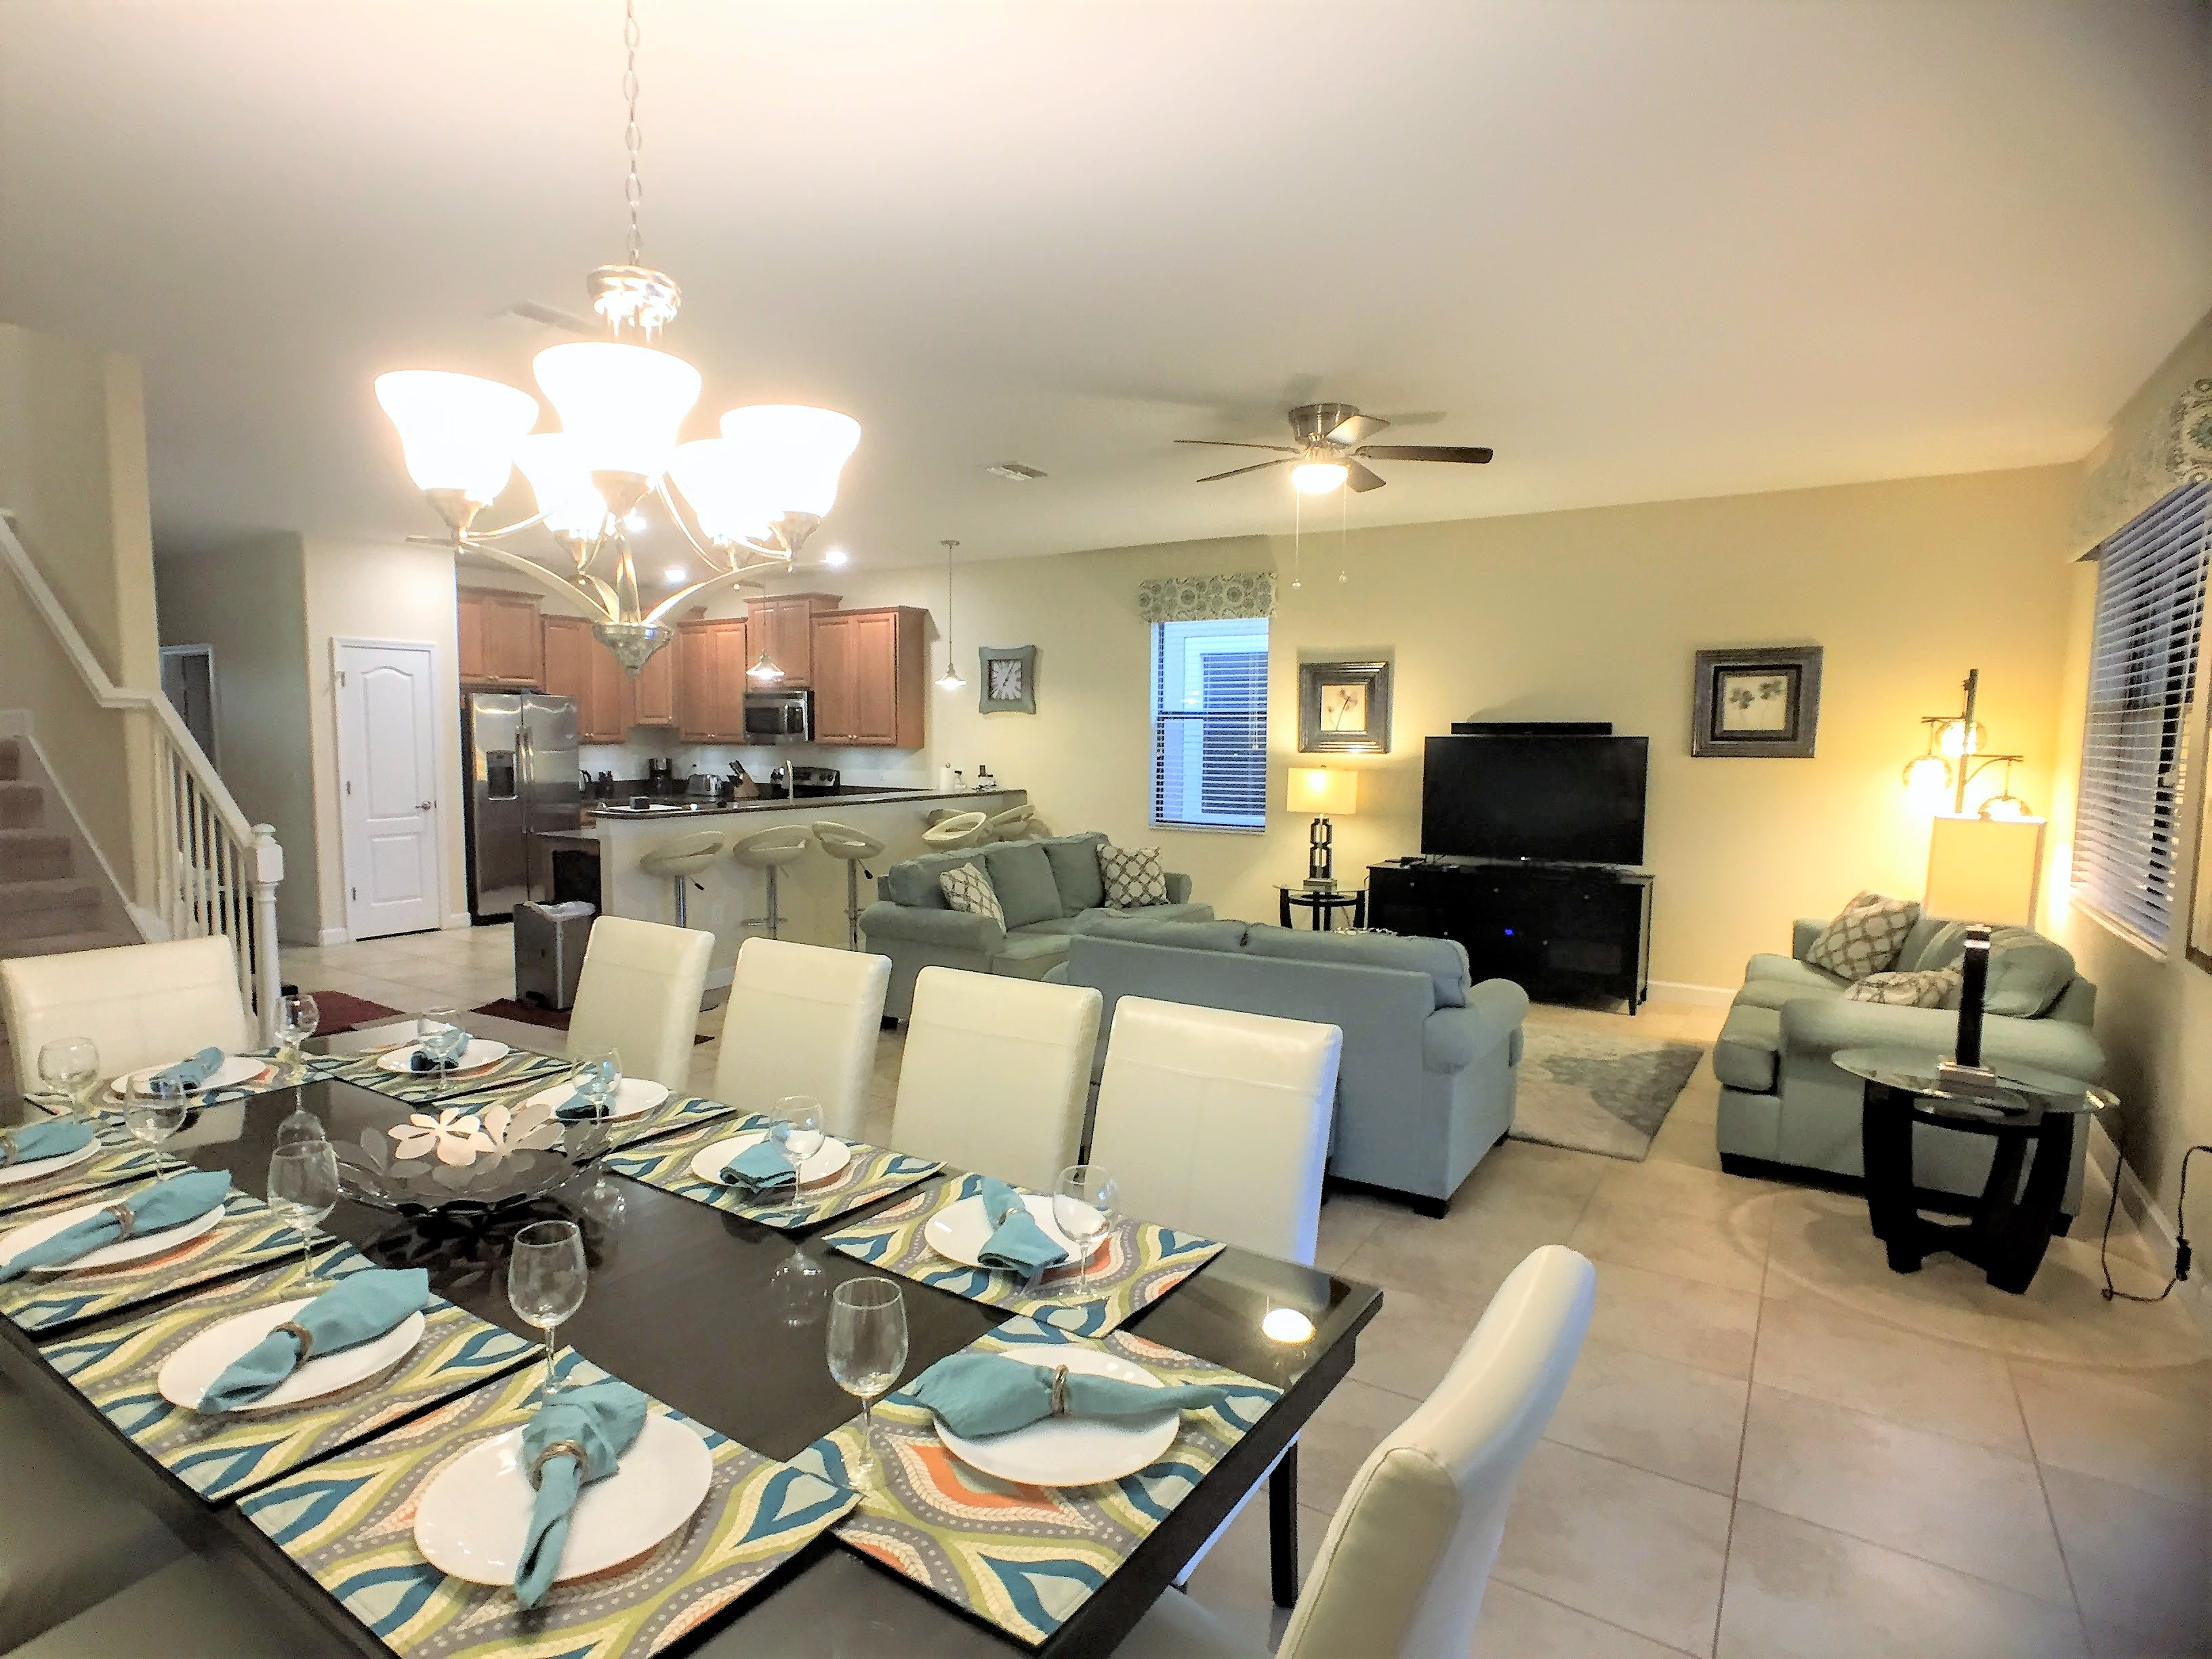 Bon 8 Bedroom Vacation Home   Starting At $339 Per Night!